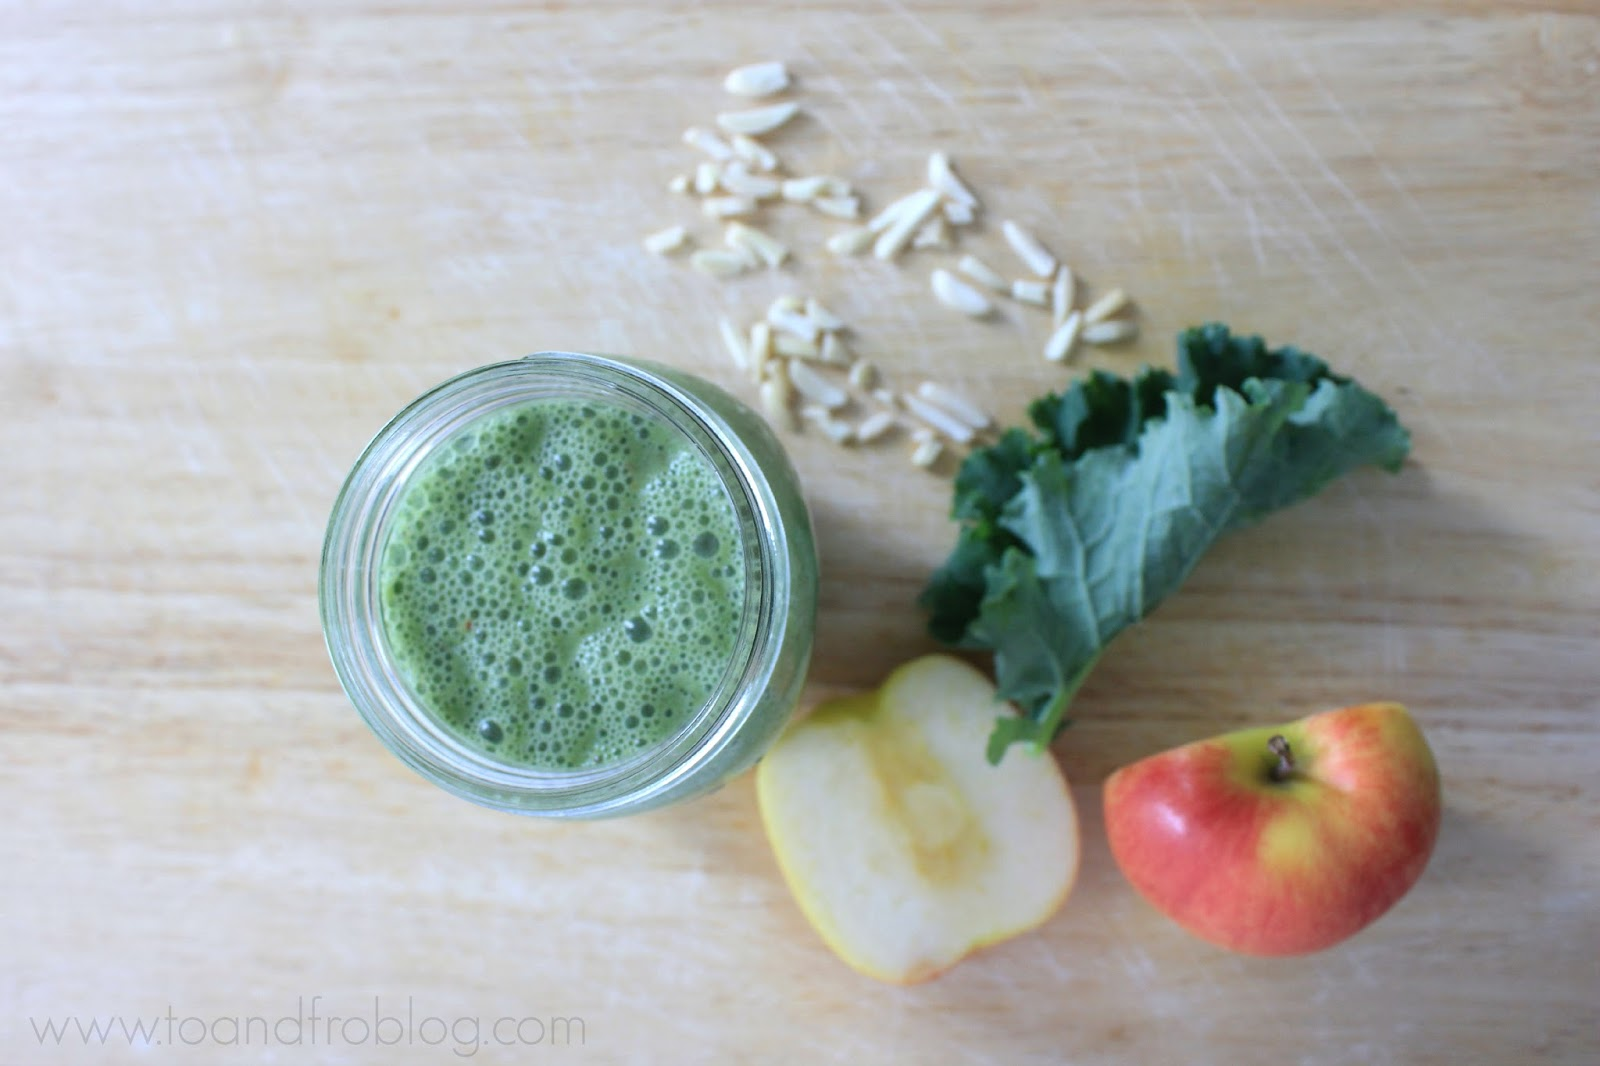 Kale Nut Smoothie Recipe